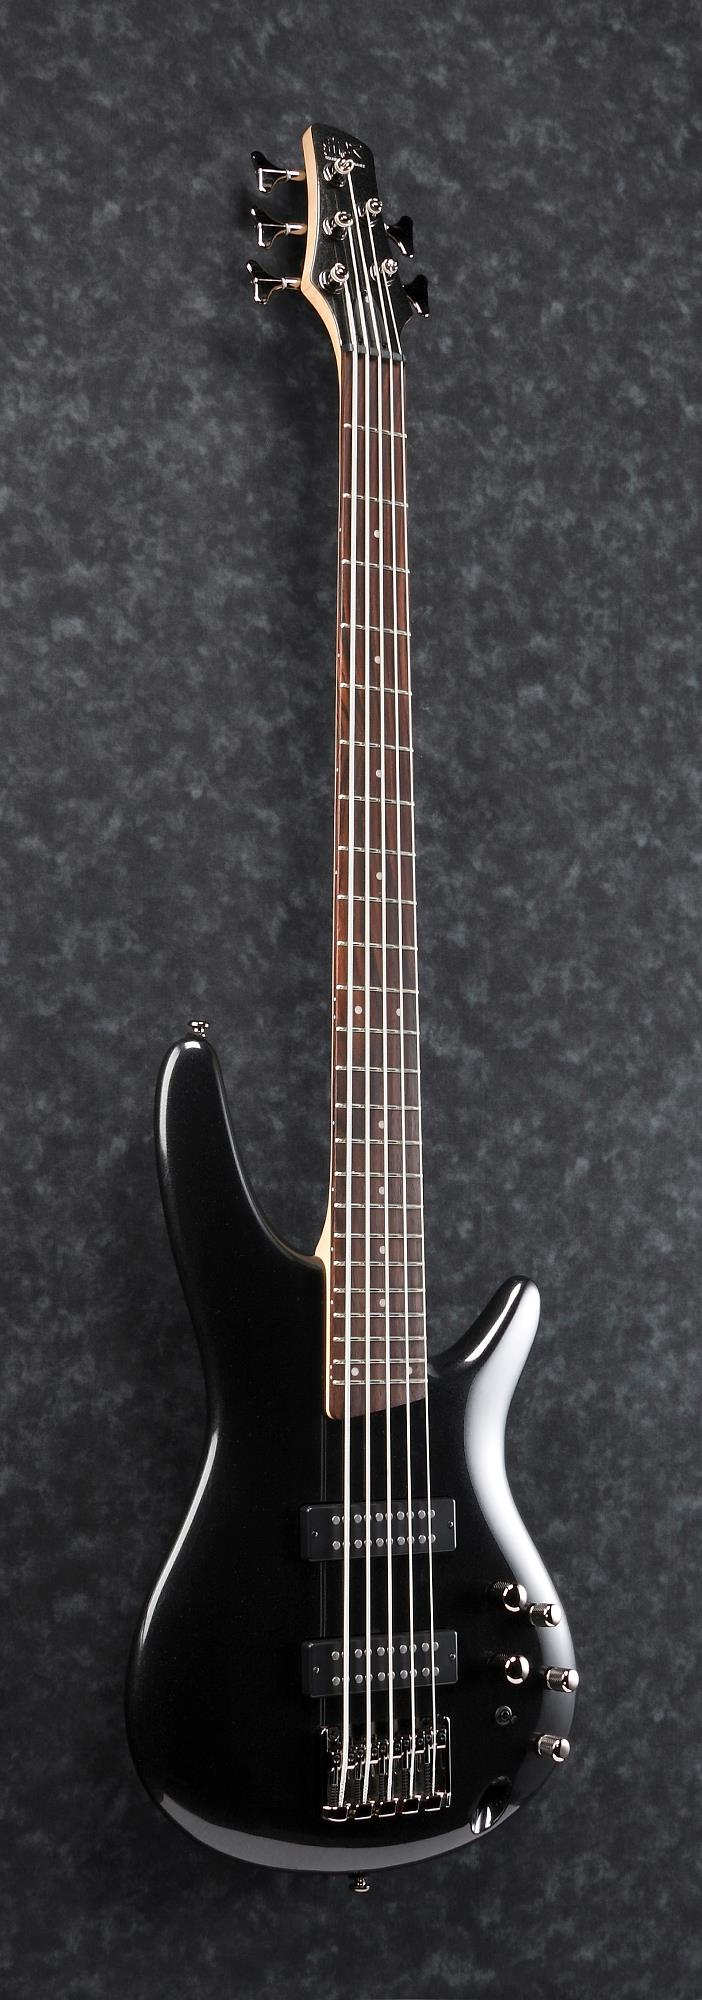 Ibanez SR305E - Electric Bass - 5 String - Iron Pewter